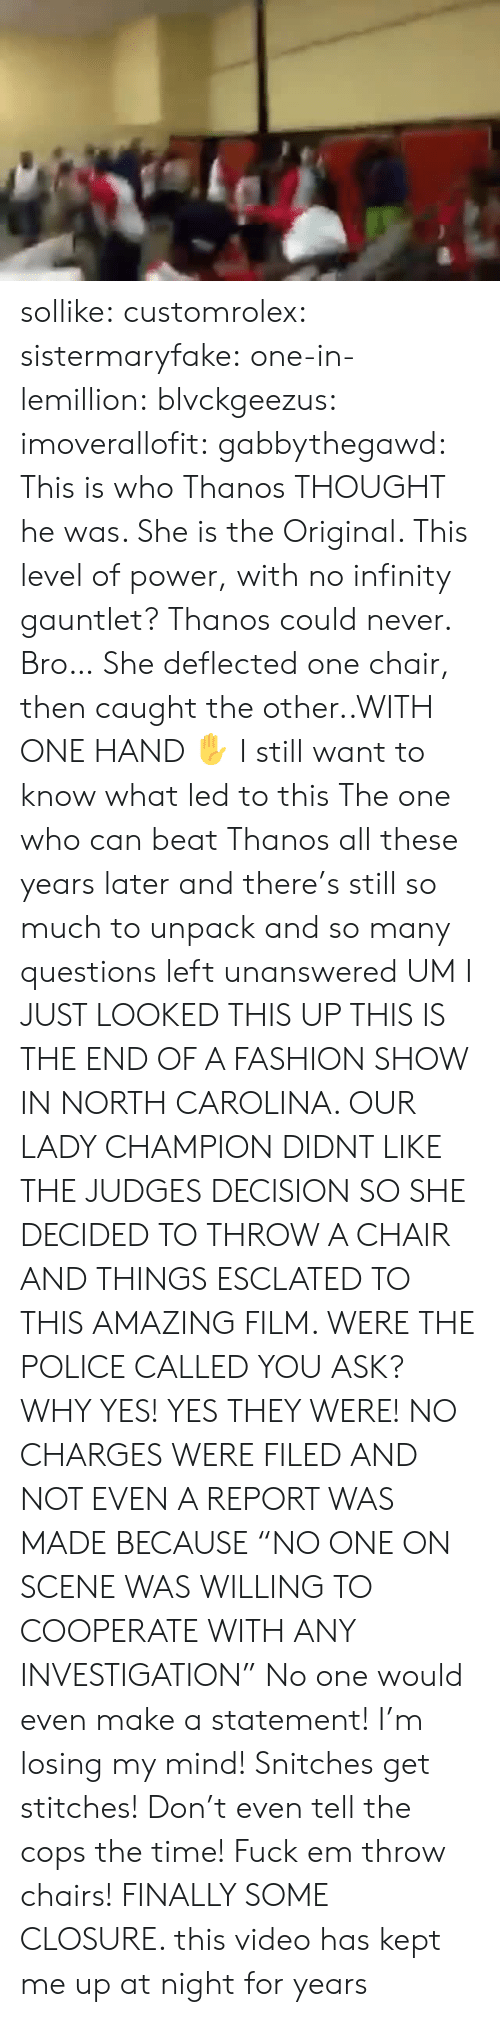 """infinity gauntlet: sollike: customrolex:   sistermaryfake:  one-in-lemillion:  blvckgeezus:  imoverallofit:   gabbythegawd: This is who Thanos THOUGHT he was. She is the Original. This level of power, with no infinity gauntlet? Thanos could never.  Bro… She deflected one chair, then caught the other..WITH ONE HAND ✋   I still want to know what led to this    The one who can beat Thanos   all these years later and there's still so much to unpack and so many questions left unanswered   UM I JUST LOOKED THIS UP  THIS IS THE END OF A FASHION SHOW IN NORTH CAROLINA. OUR LADY CHAMPION DIDNT LIKE THE JUDGES DECISION SO SHE DECIDED TO THROW A CHAIR AND THINGS ESCLATED TO THIS AMAZING FILM.  WERE THE POLICE CALLED YOU ASK? WHY YES! YES THEY WERE!  NO CHARGES WERE FILED AND NOT EVEN A REPORT WAS MADE BECAUSE """"NO ONE ON SCENE WAS WILLING TO COOPERATE WITH ANY INVESTIGATION""""  No one would even make a statement! I'm losing my mind! Snitches get stitches! Don't even tell the cops the time! Fuck em throw chairs!   FINALLY SOME CLOSURE. this video has kept me up at night for years"""